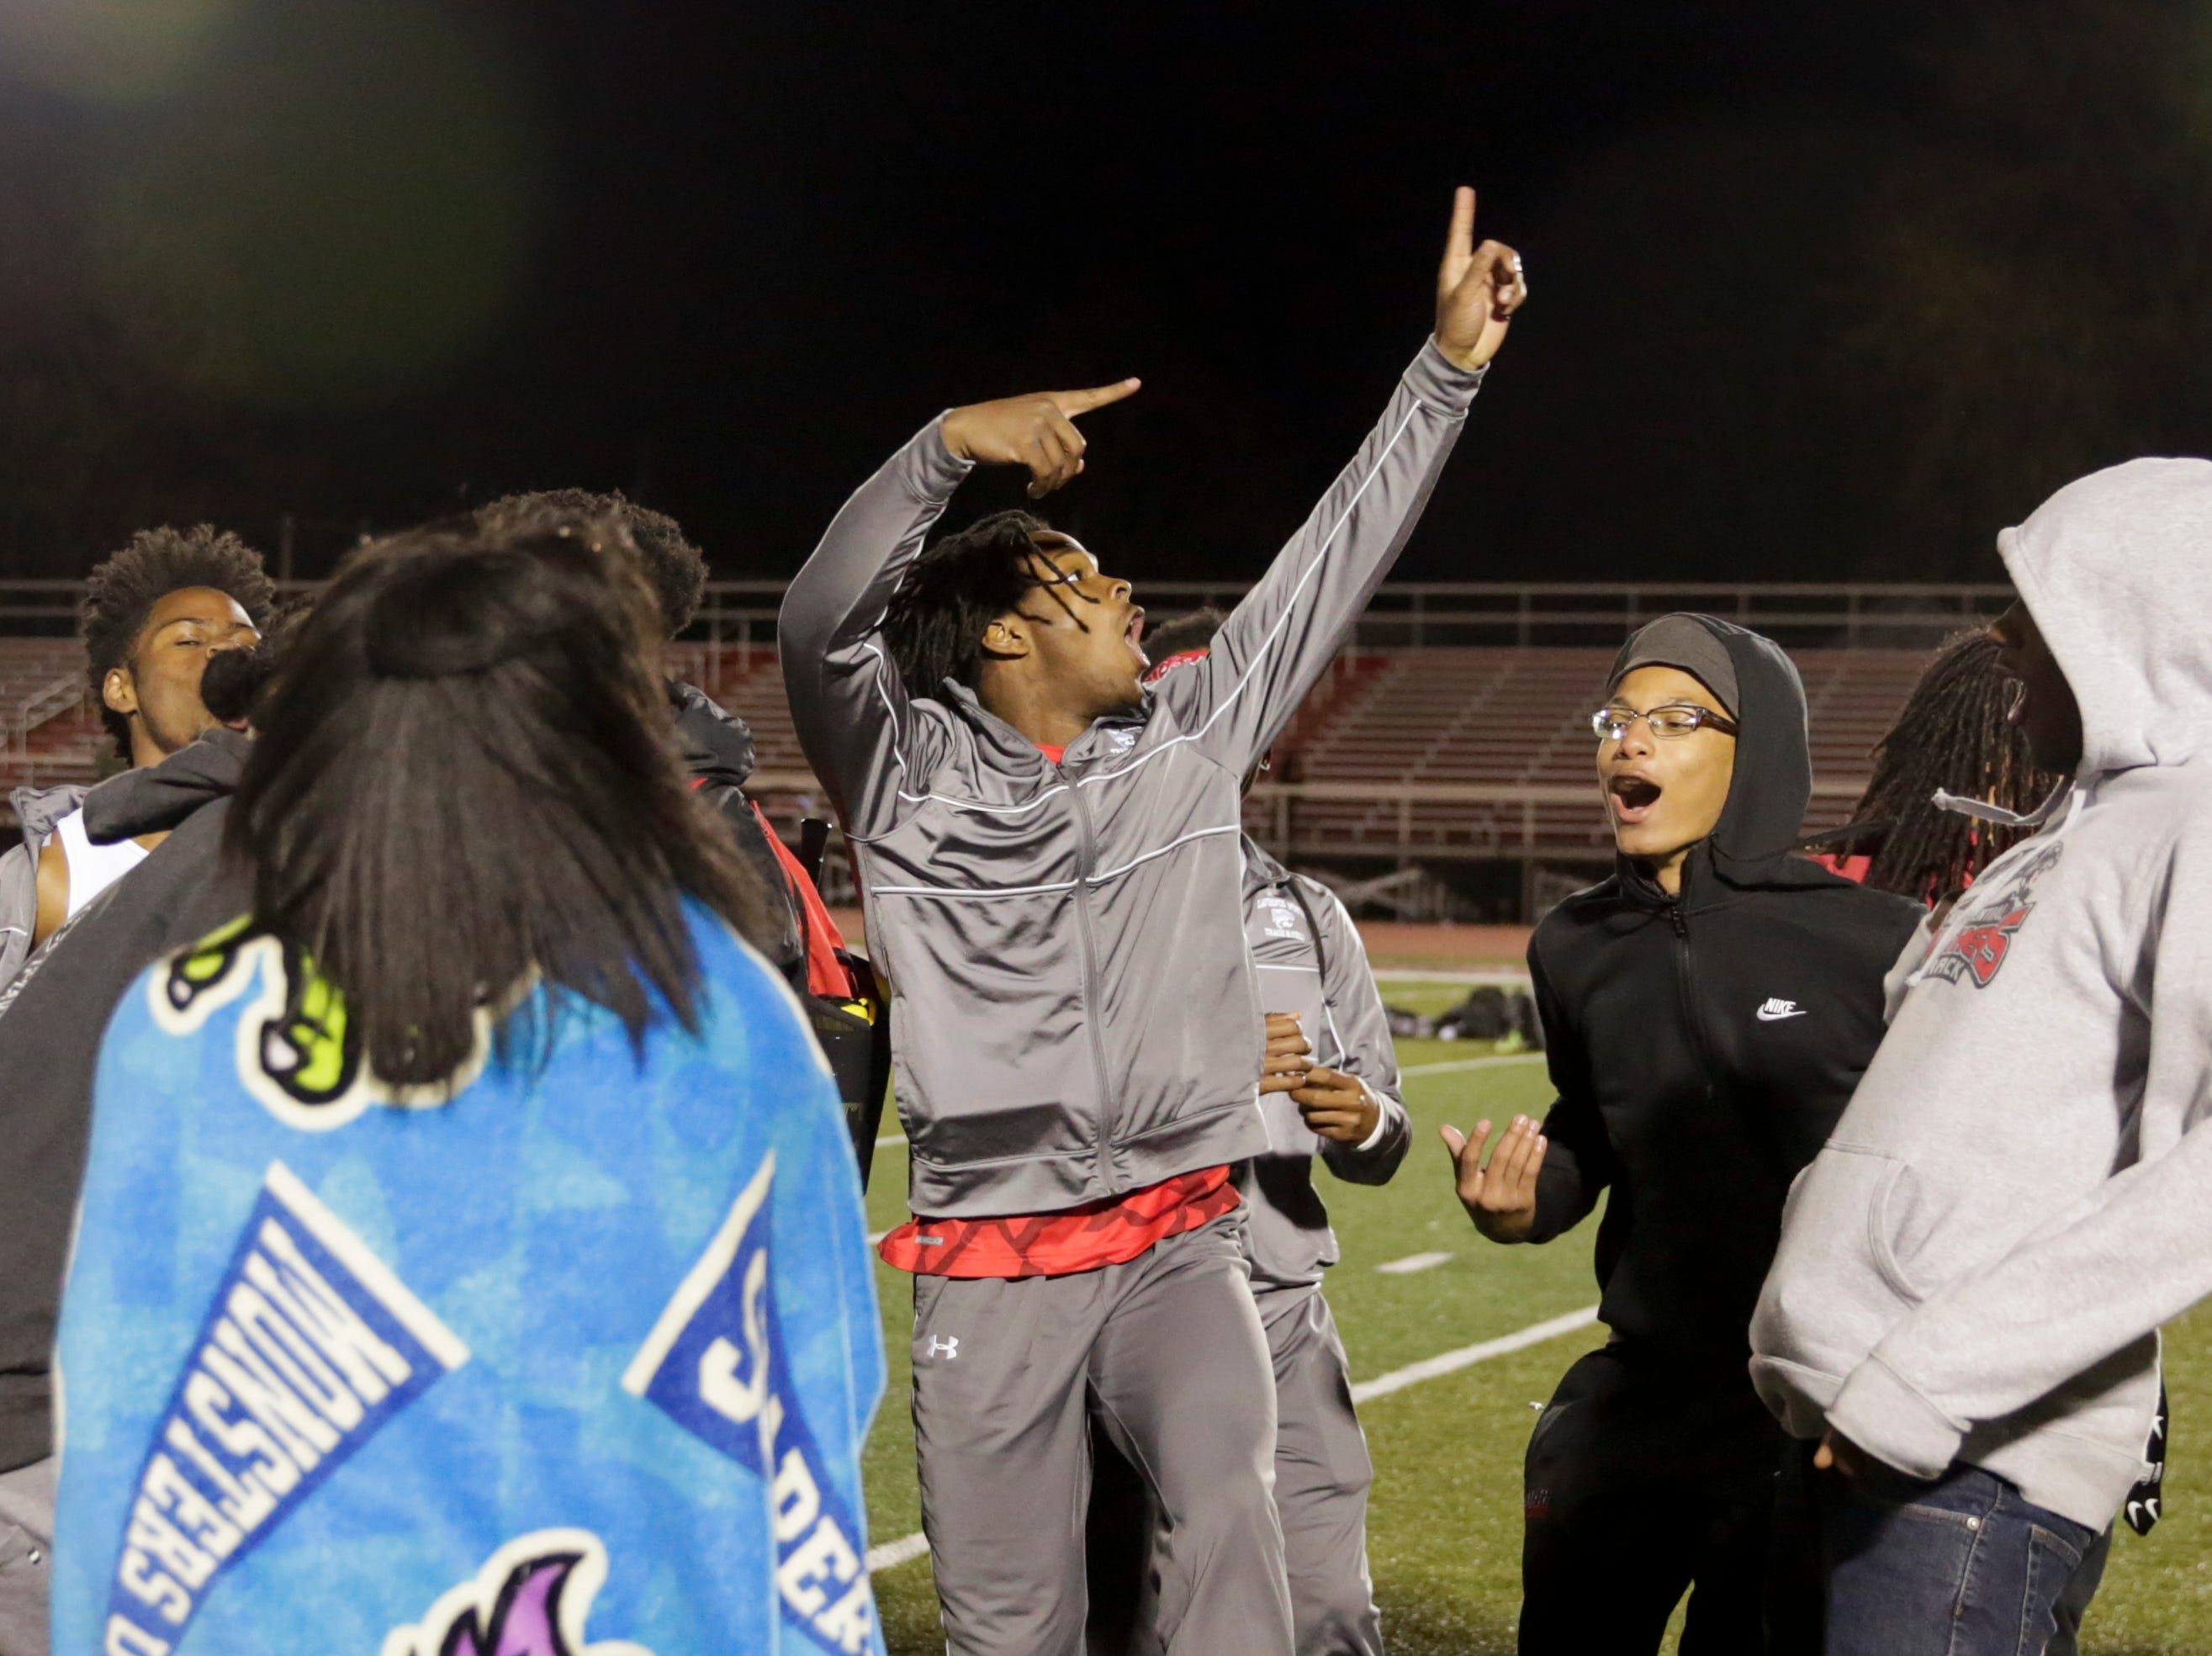 Competitors dance after the last heat of the 2019 Sprinters Showcase, Friday, April 12, 2019, at Lafayette Jeff High School in Lafayette.